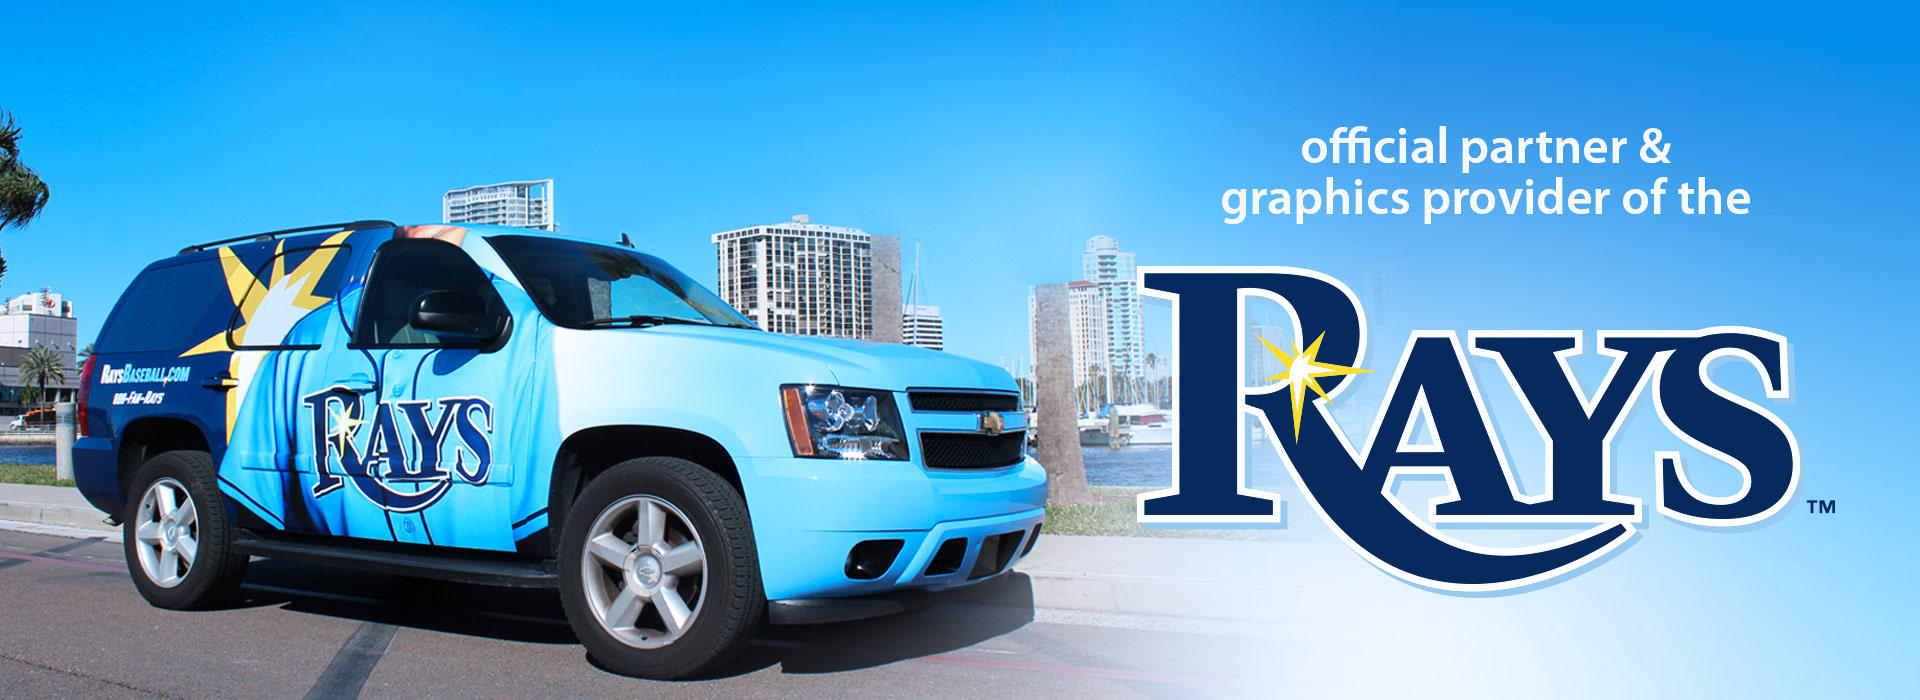 big-MAIN-HEADER-RAYS-BASEBALL-VEHICLE-WR